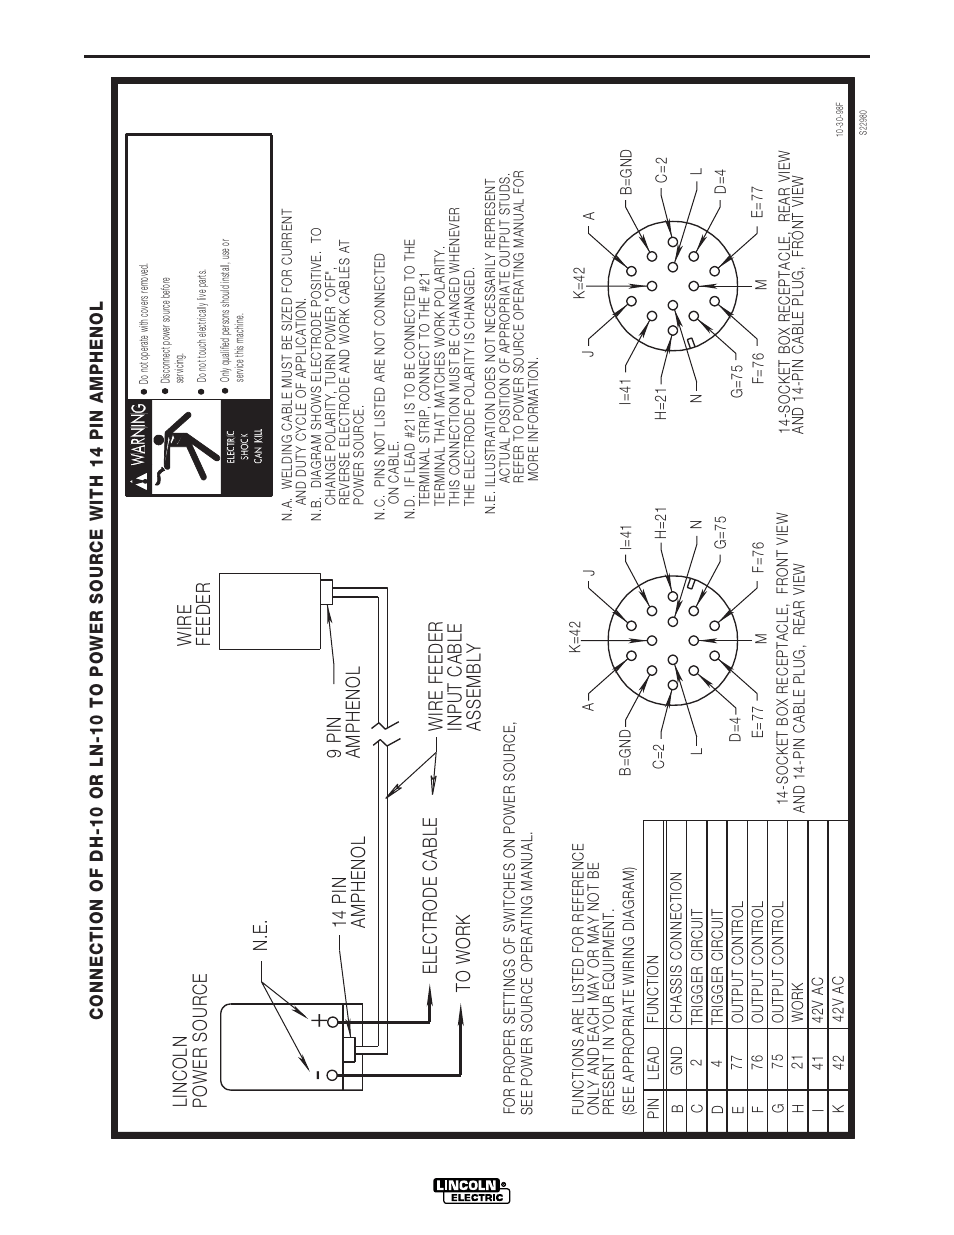 hight resolution of sch mas dc 600 lincoln electric im642 idealarc dc 600 manuel d utilisation page 49 56